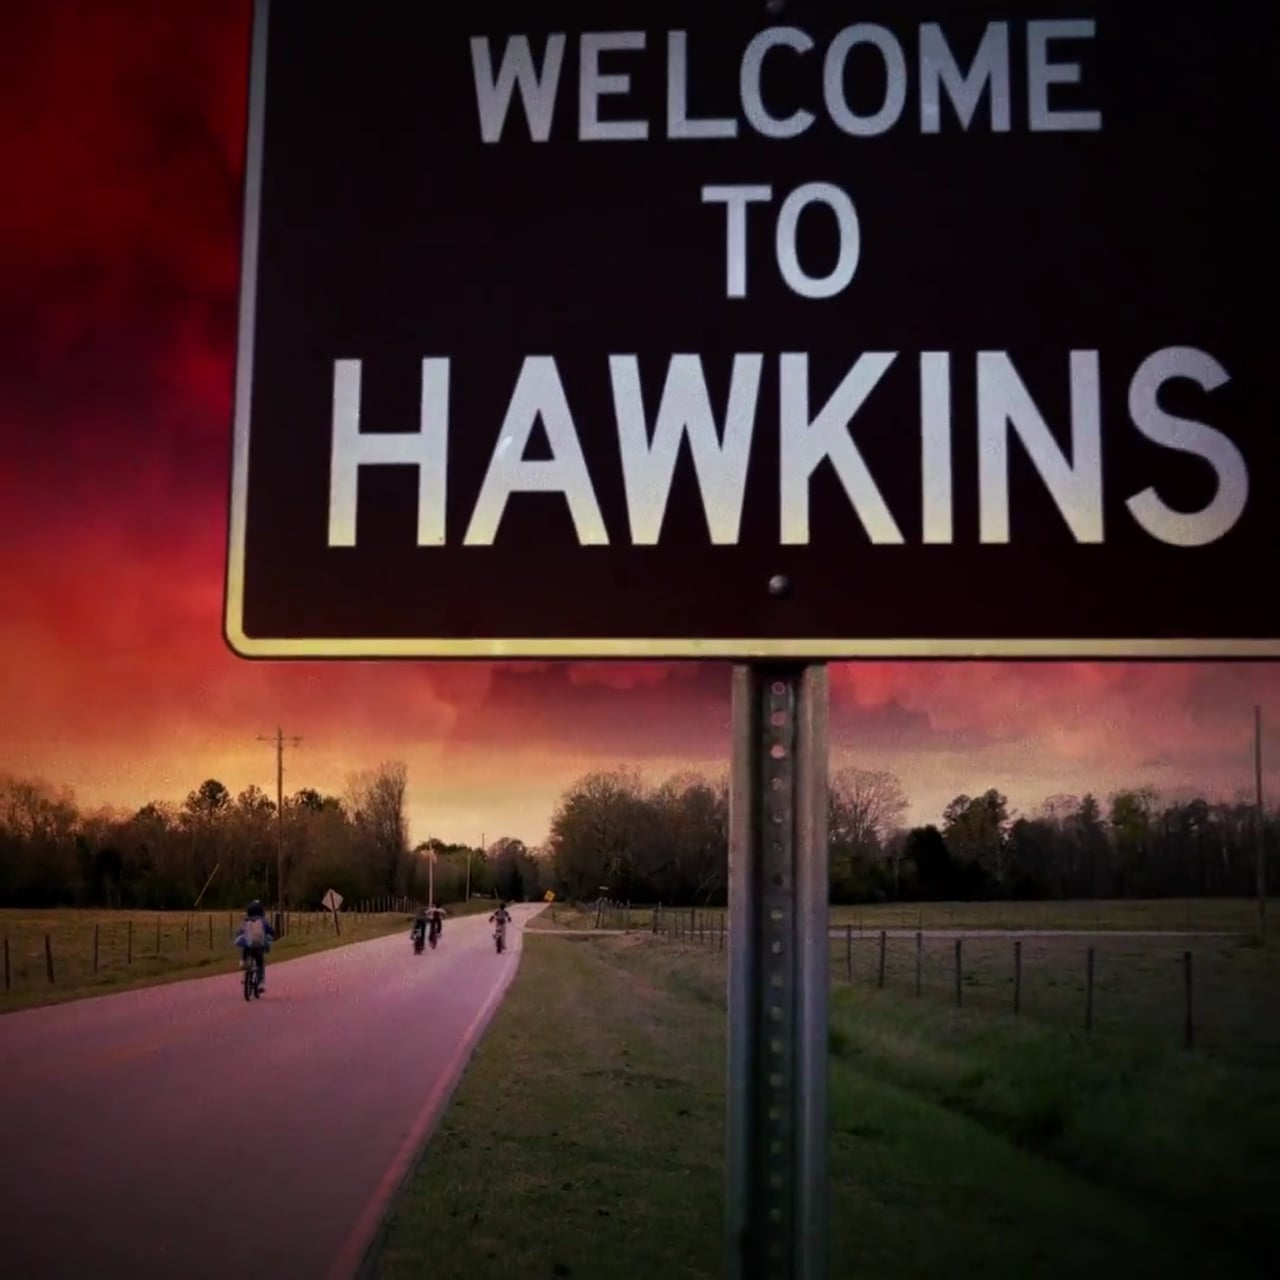 For Thanksgiving Break, enter Hawkins, Indiana.